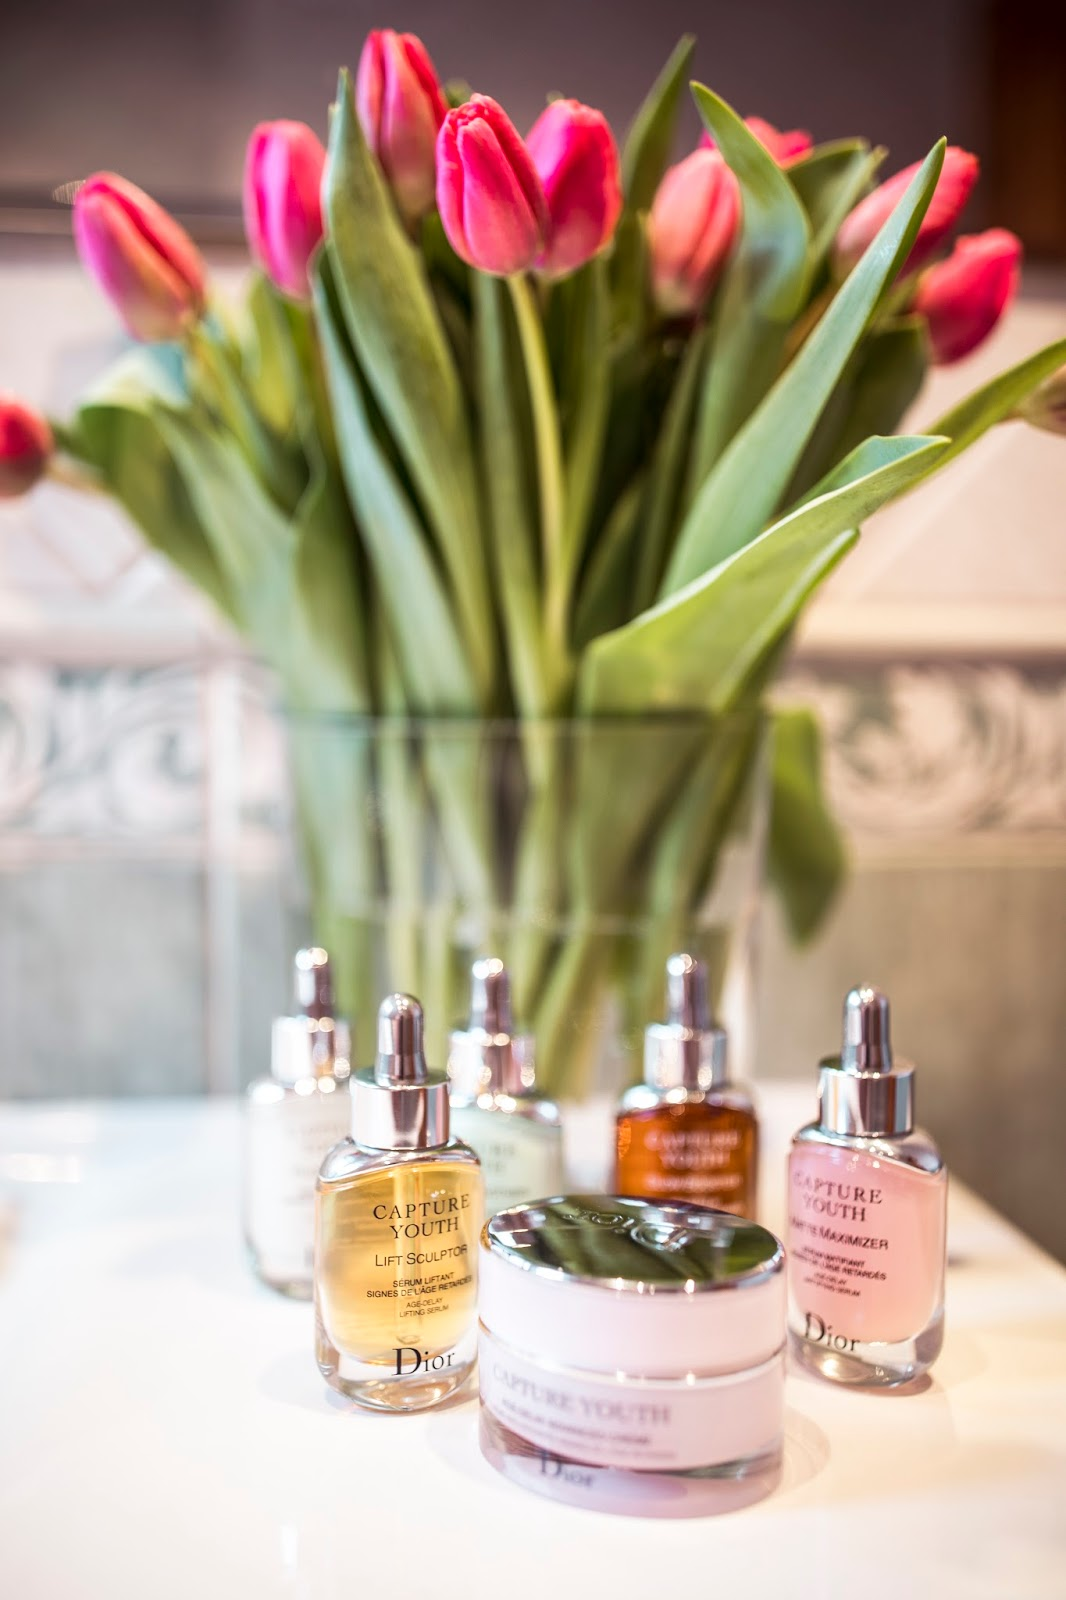 dior capture yout beauty skincare products pink flowers bathroom